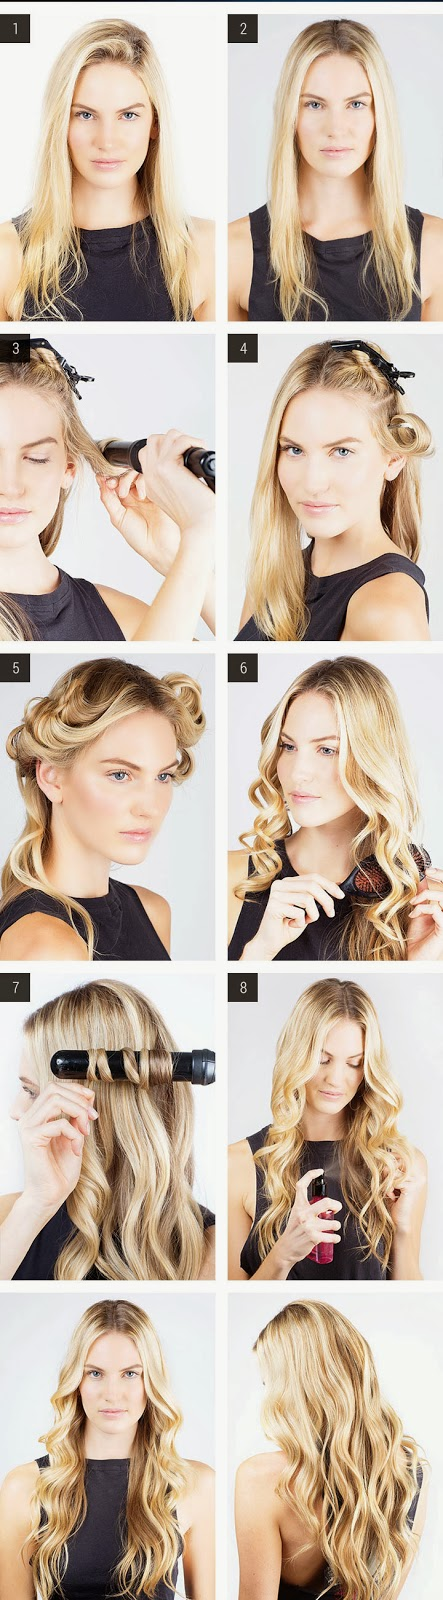 Gaya Rambut Mermaid waves Trends 2014